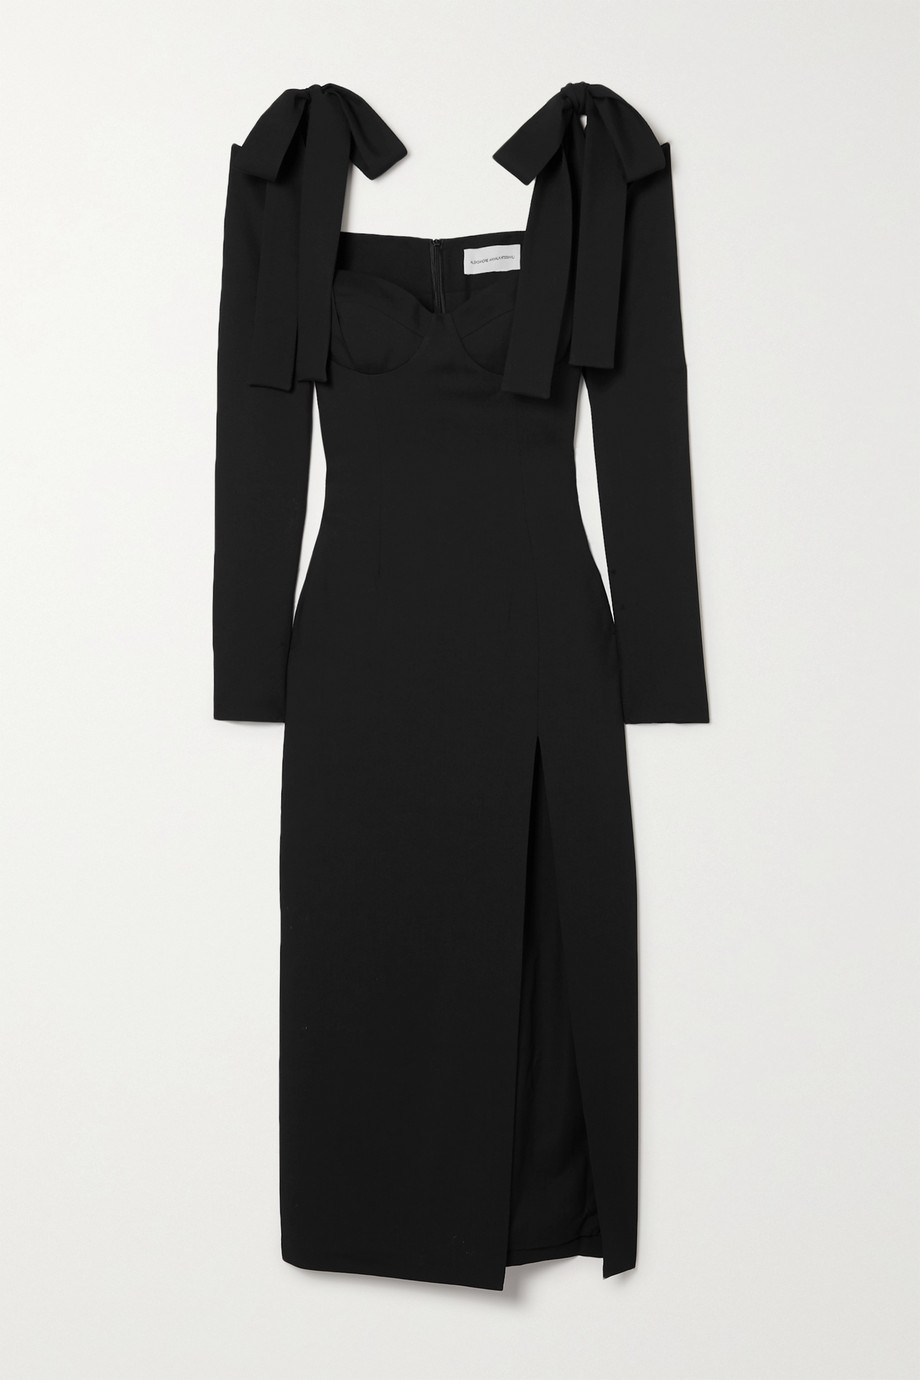 Aleksandre Akhalkatsishvili Cold-shoulder wool-twill midi dress